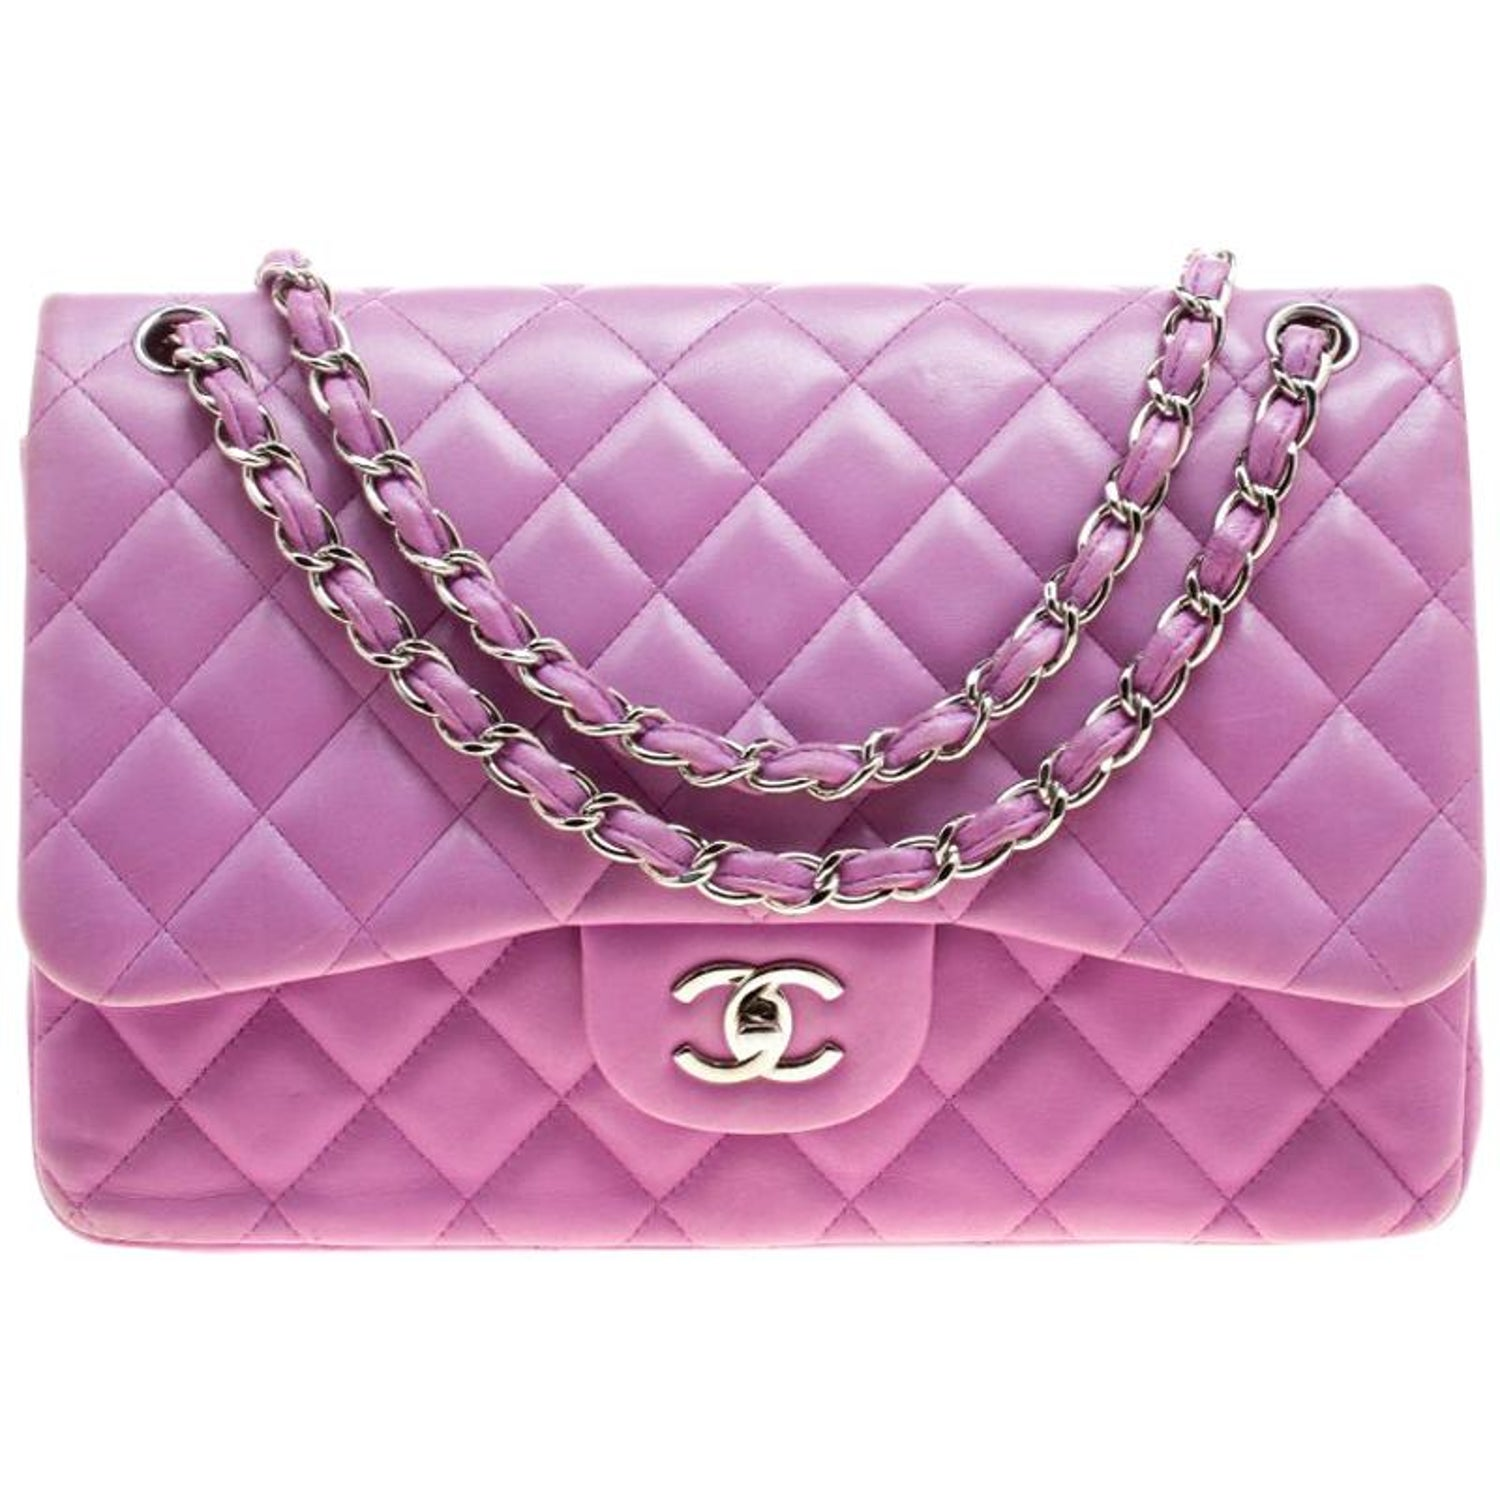 8d2fc5c1d309 Chanel Lilac Quilted Leather Jumbo Classic Double Flap Bag For Sale at  1stdibs